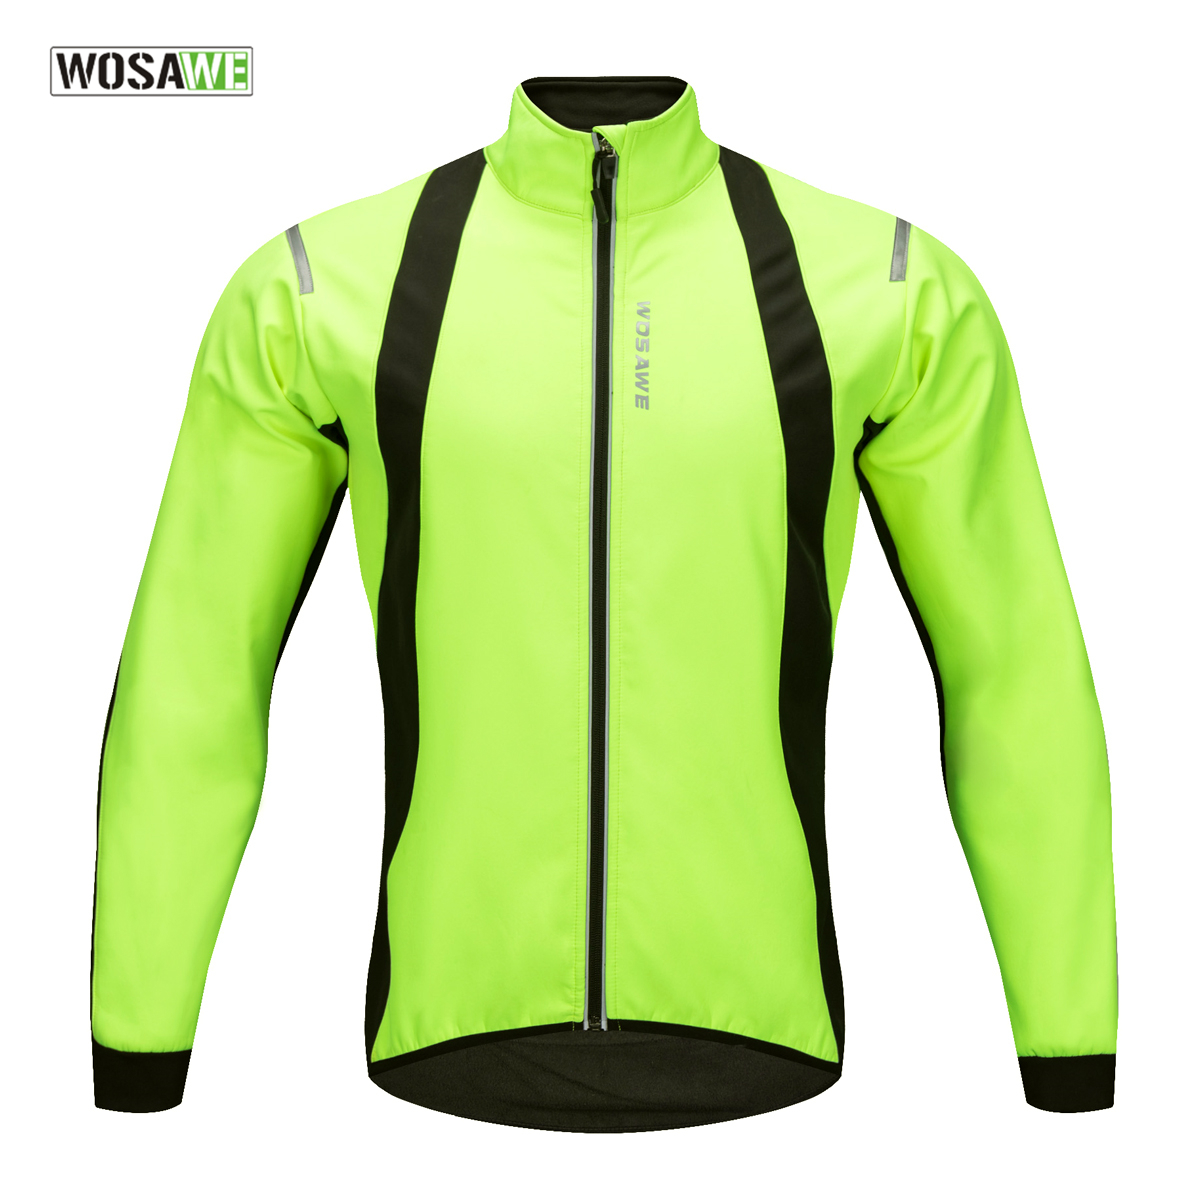 WOSAWE 2018 Windproof Cycling Jacket Winter Warm Up Bicycle Clothing Water Repellent Front Sports Coat Thermal MTB Bike Jersey